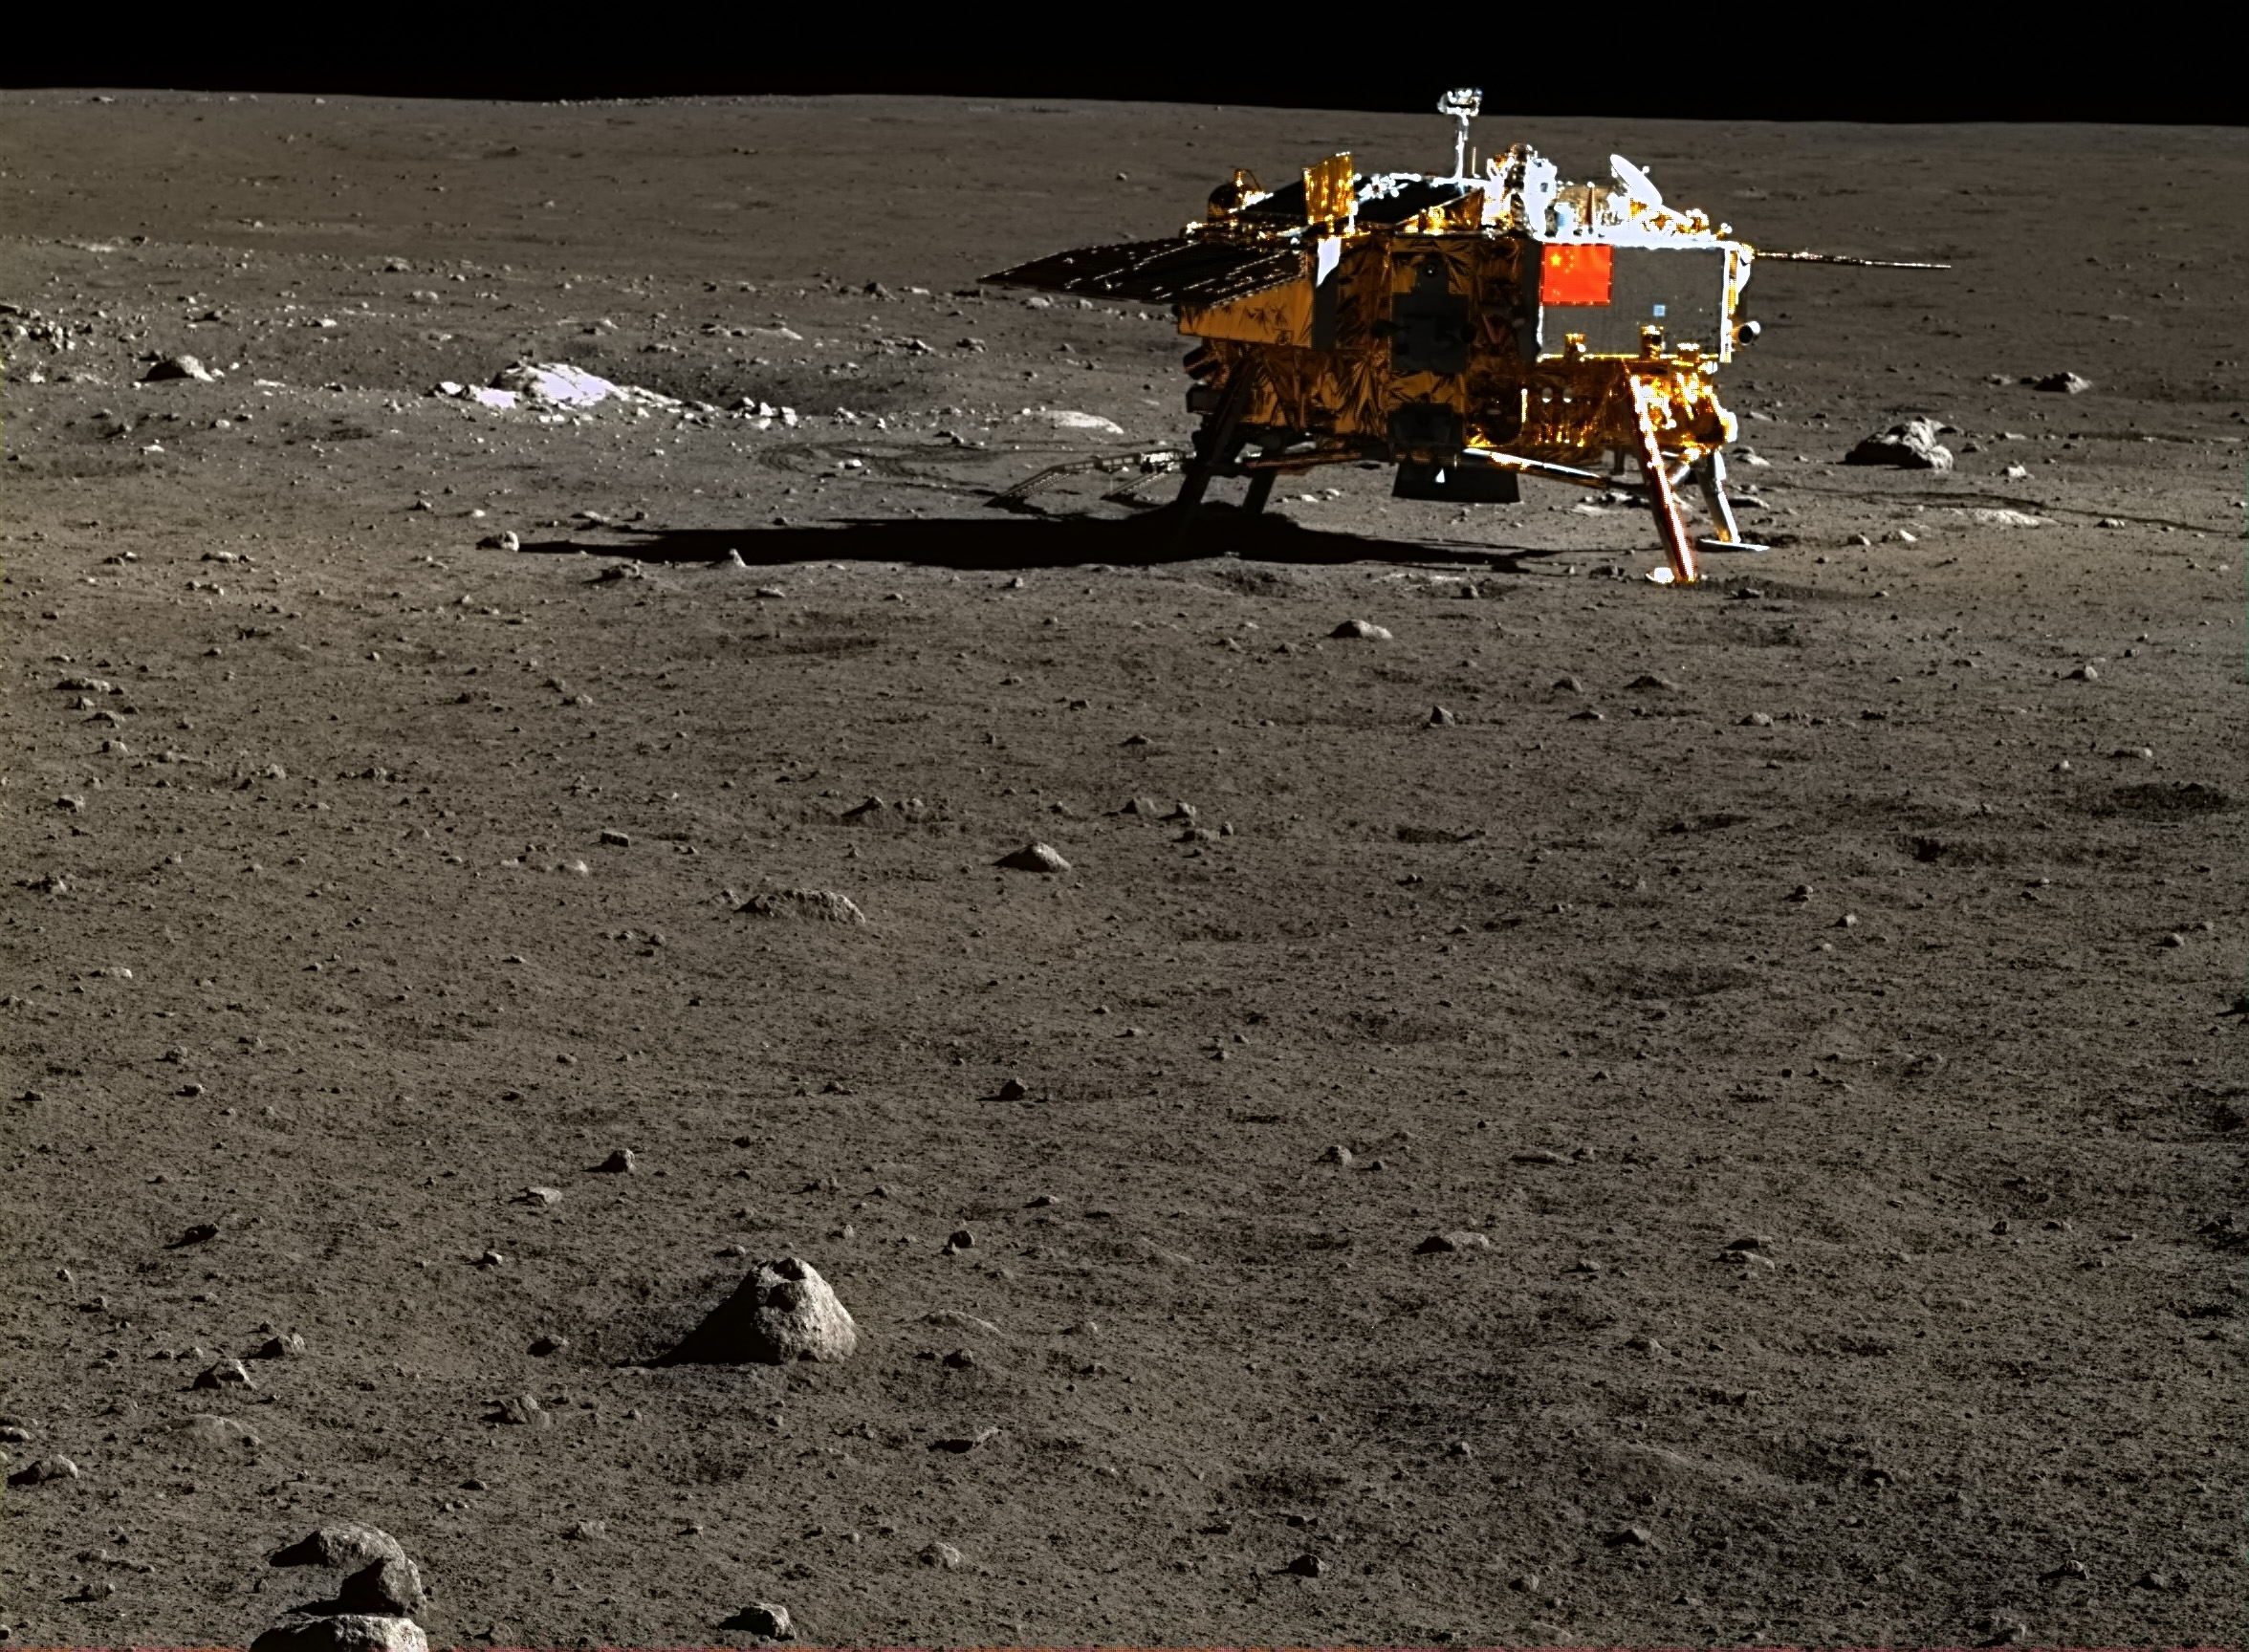 Chang'e 3 lander on the Moon in colour